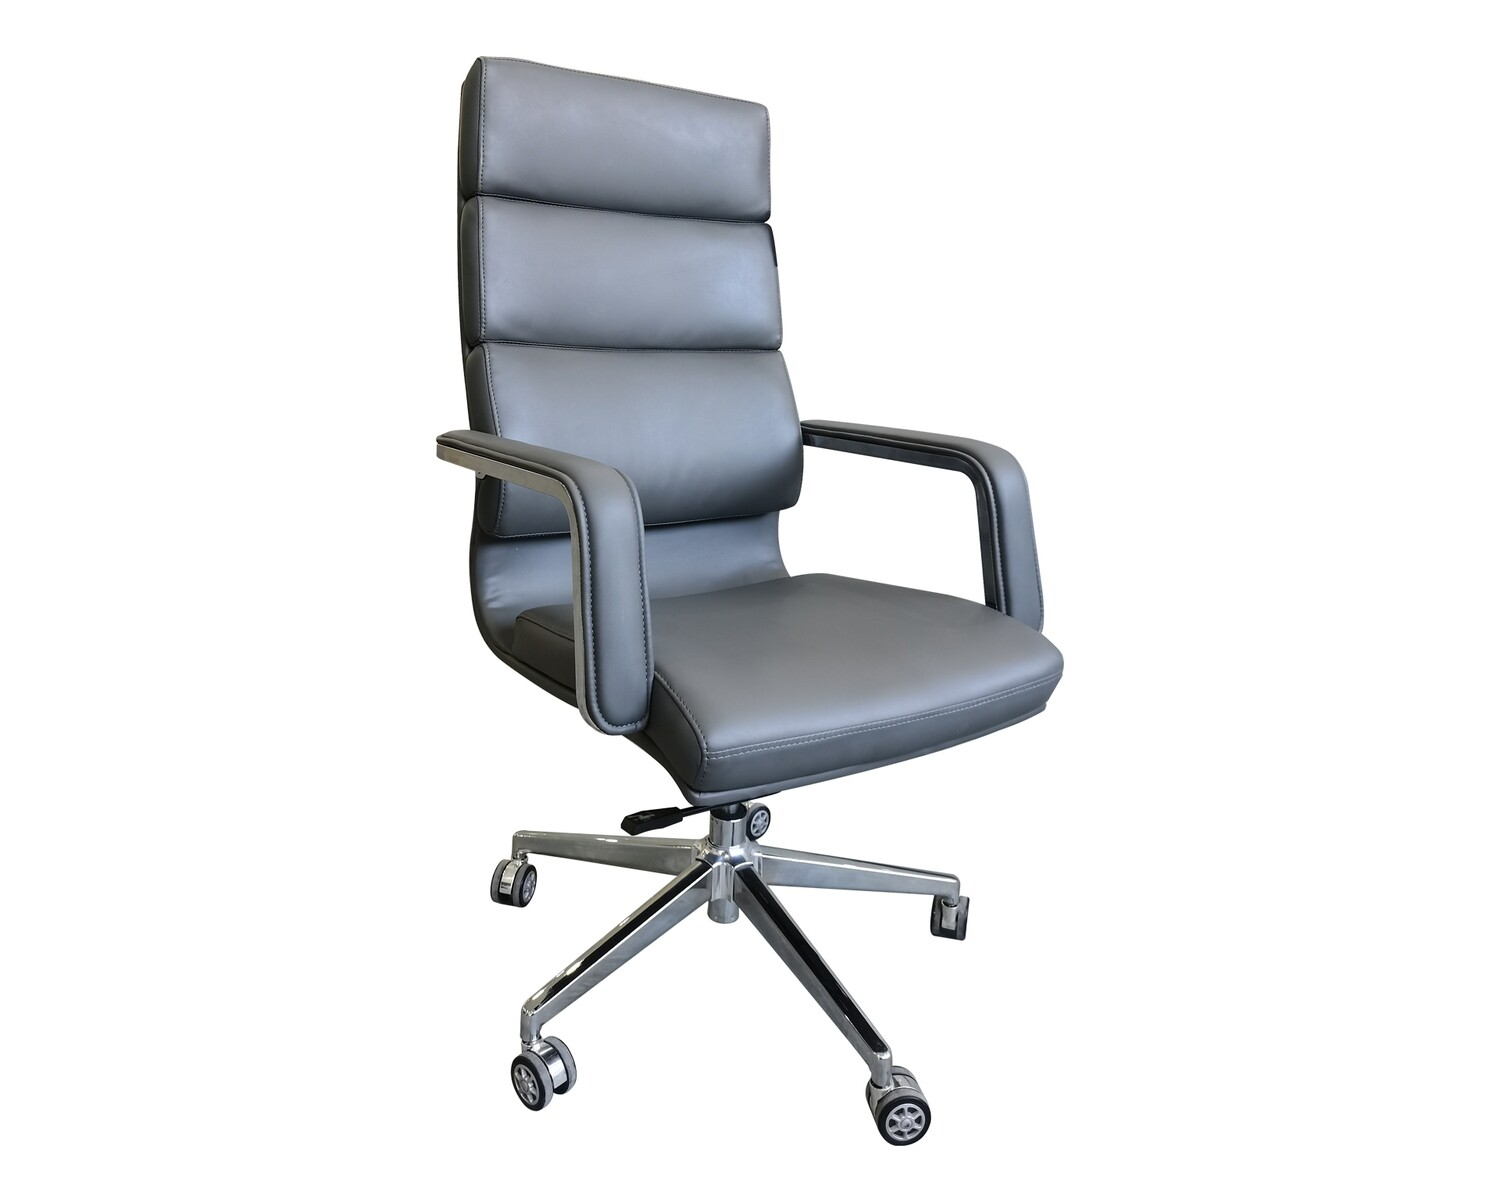 Ofix Premium-41 High Back PU Chair (Grey)